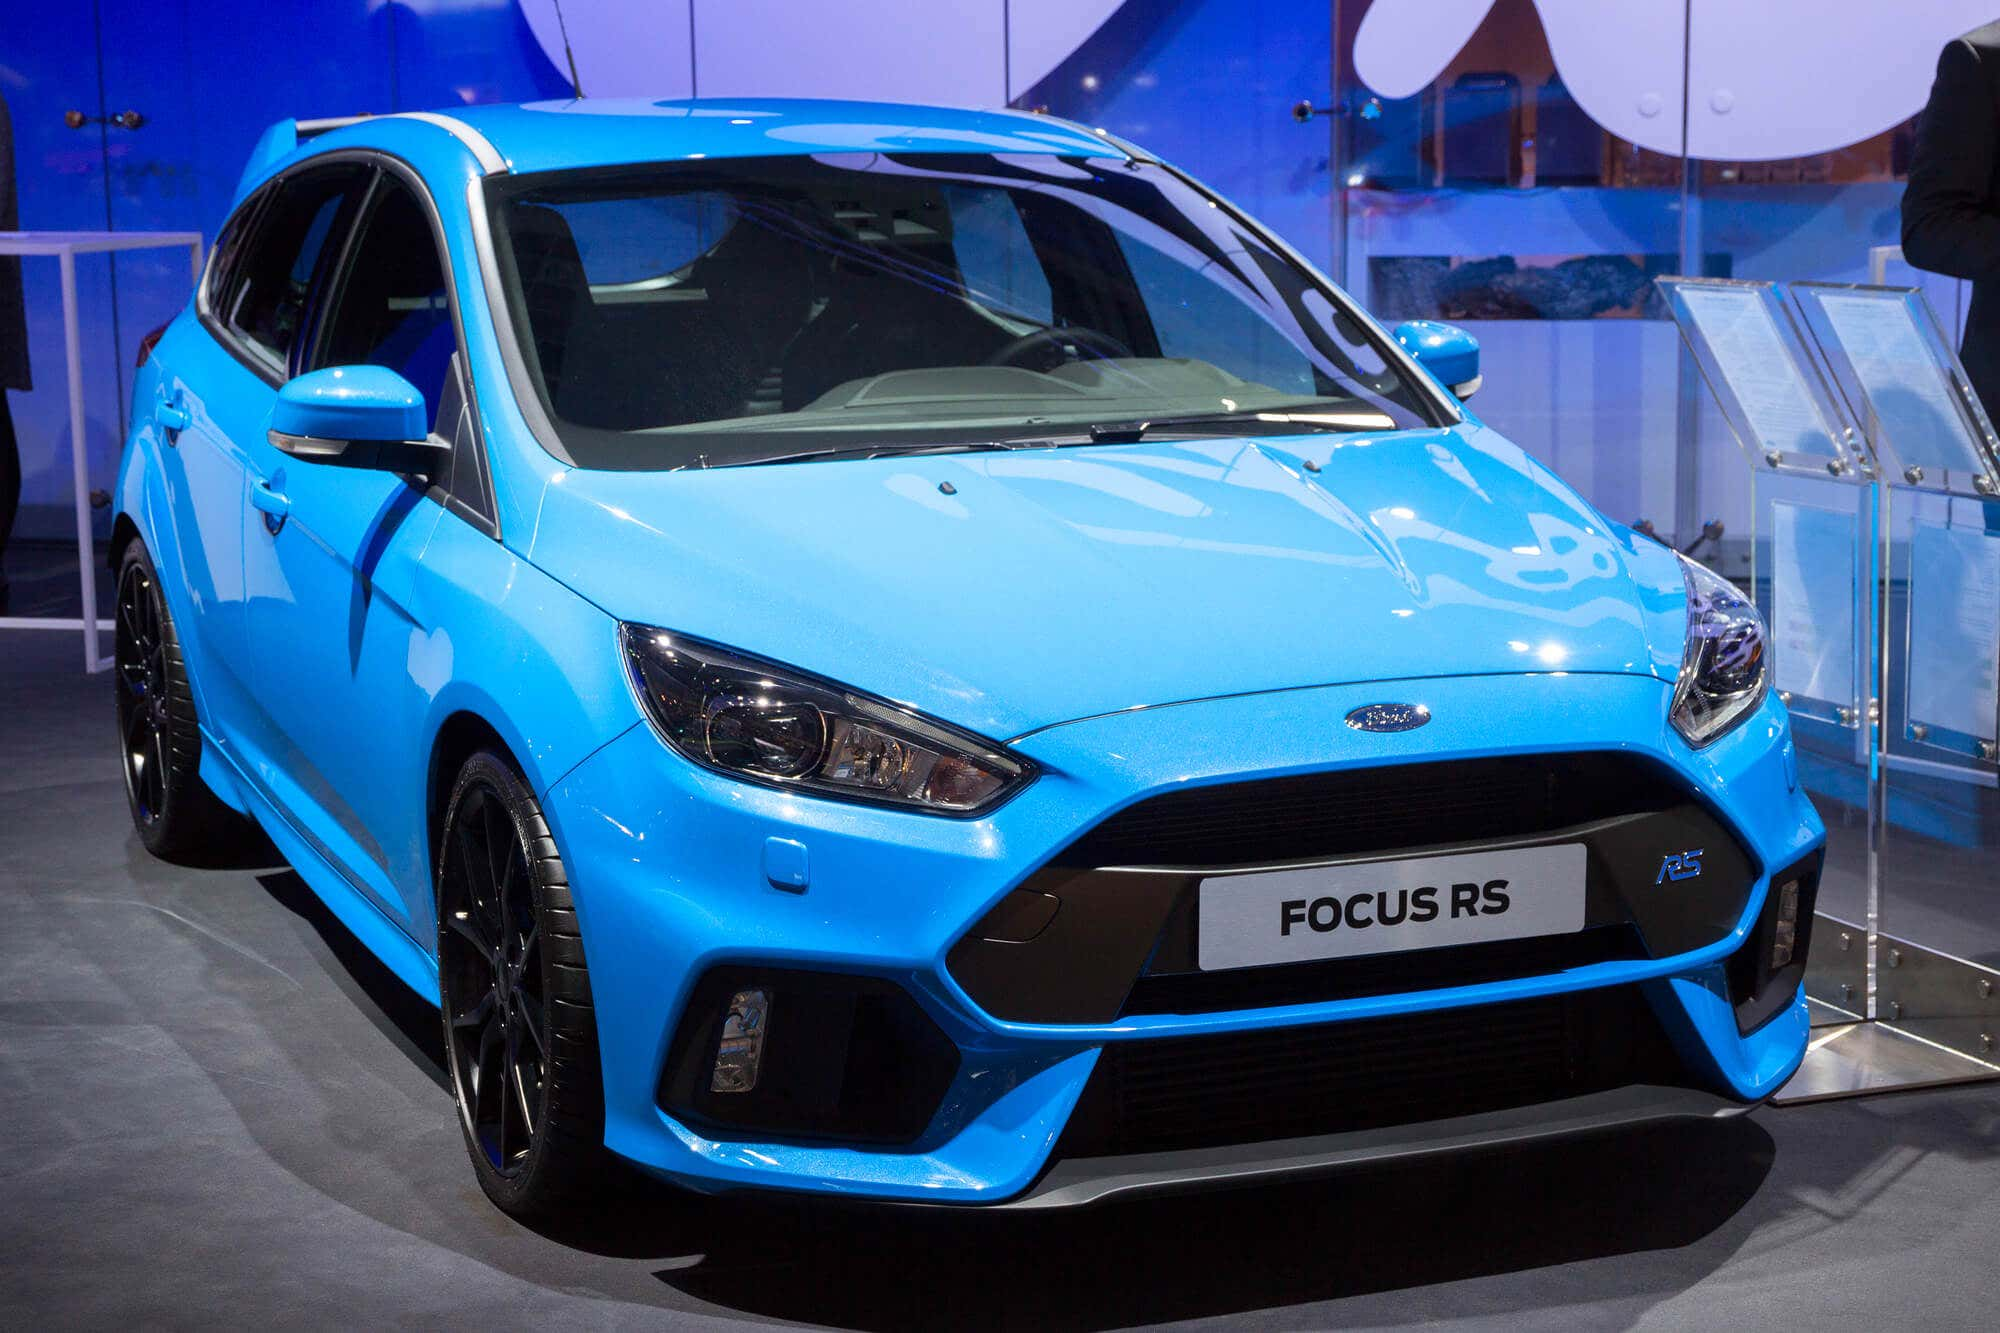 Ford Focus RS model